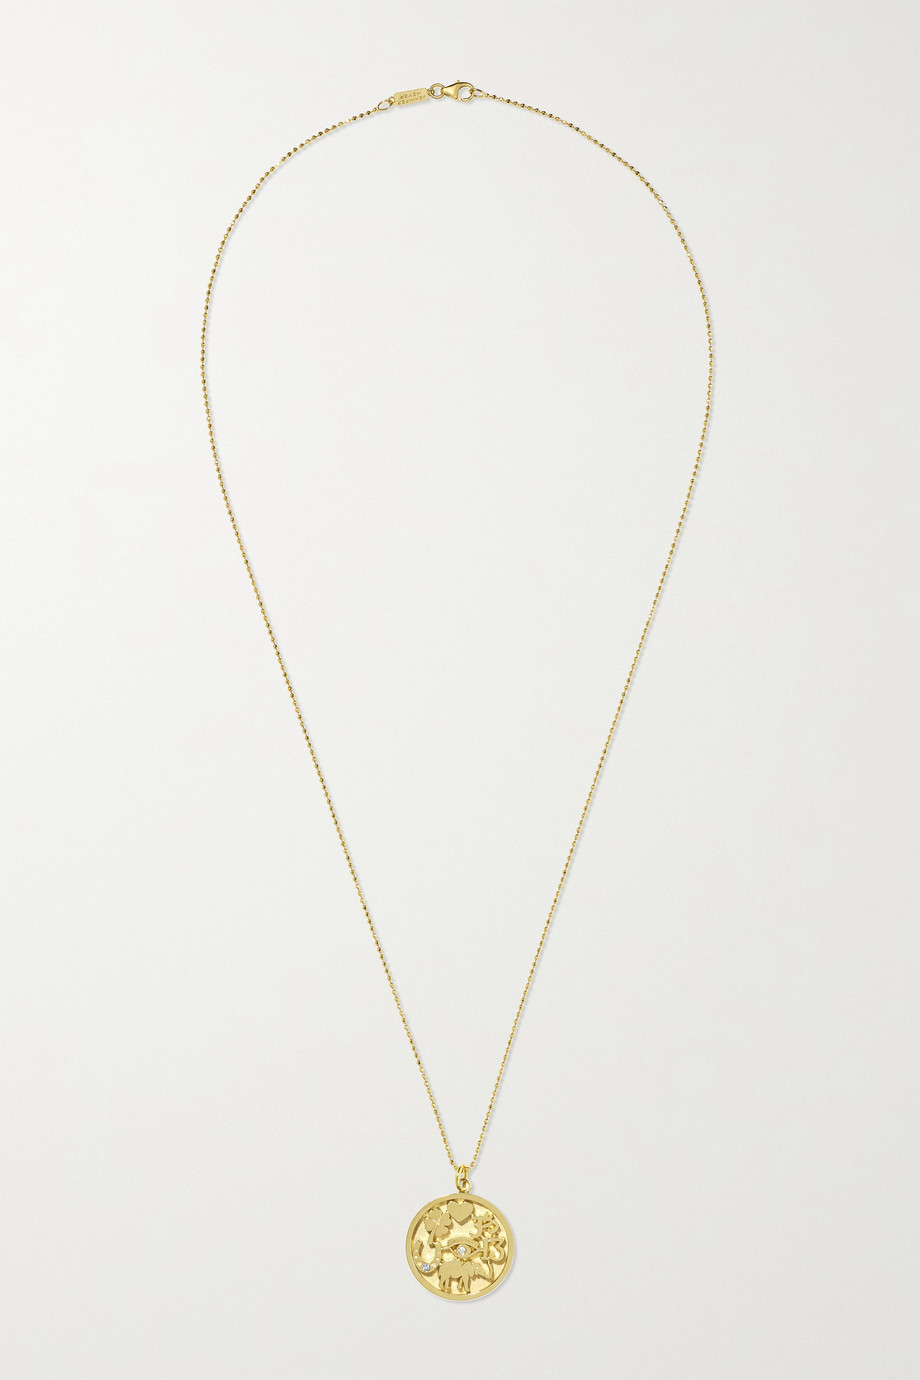 JENNIFER MEYER Good Luck 18-karat gold diamond necklace